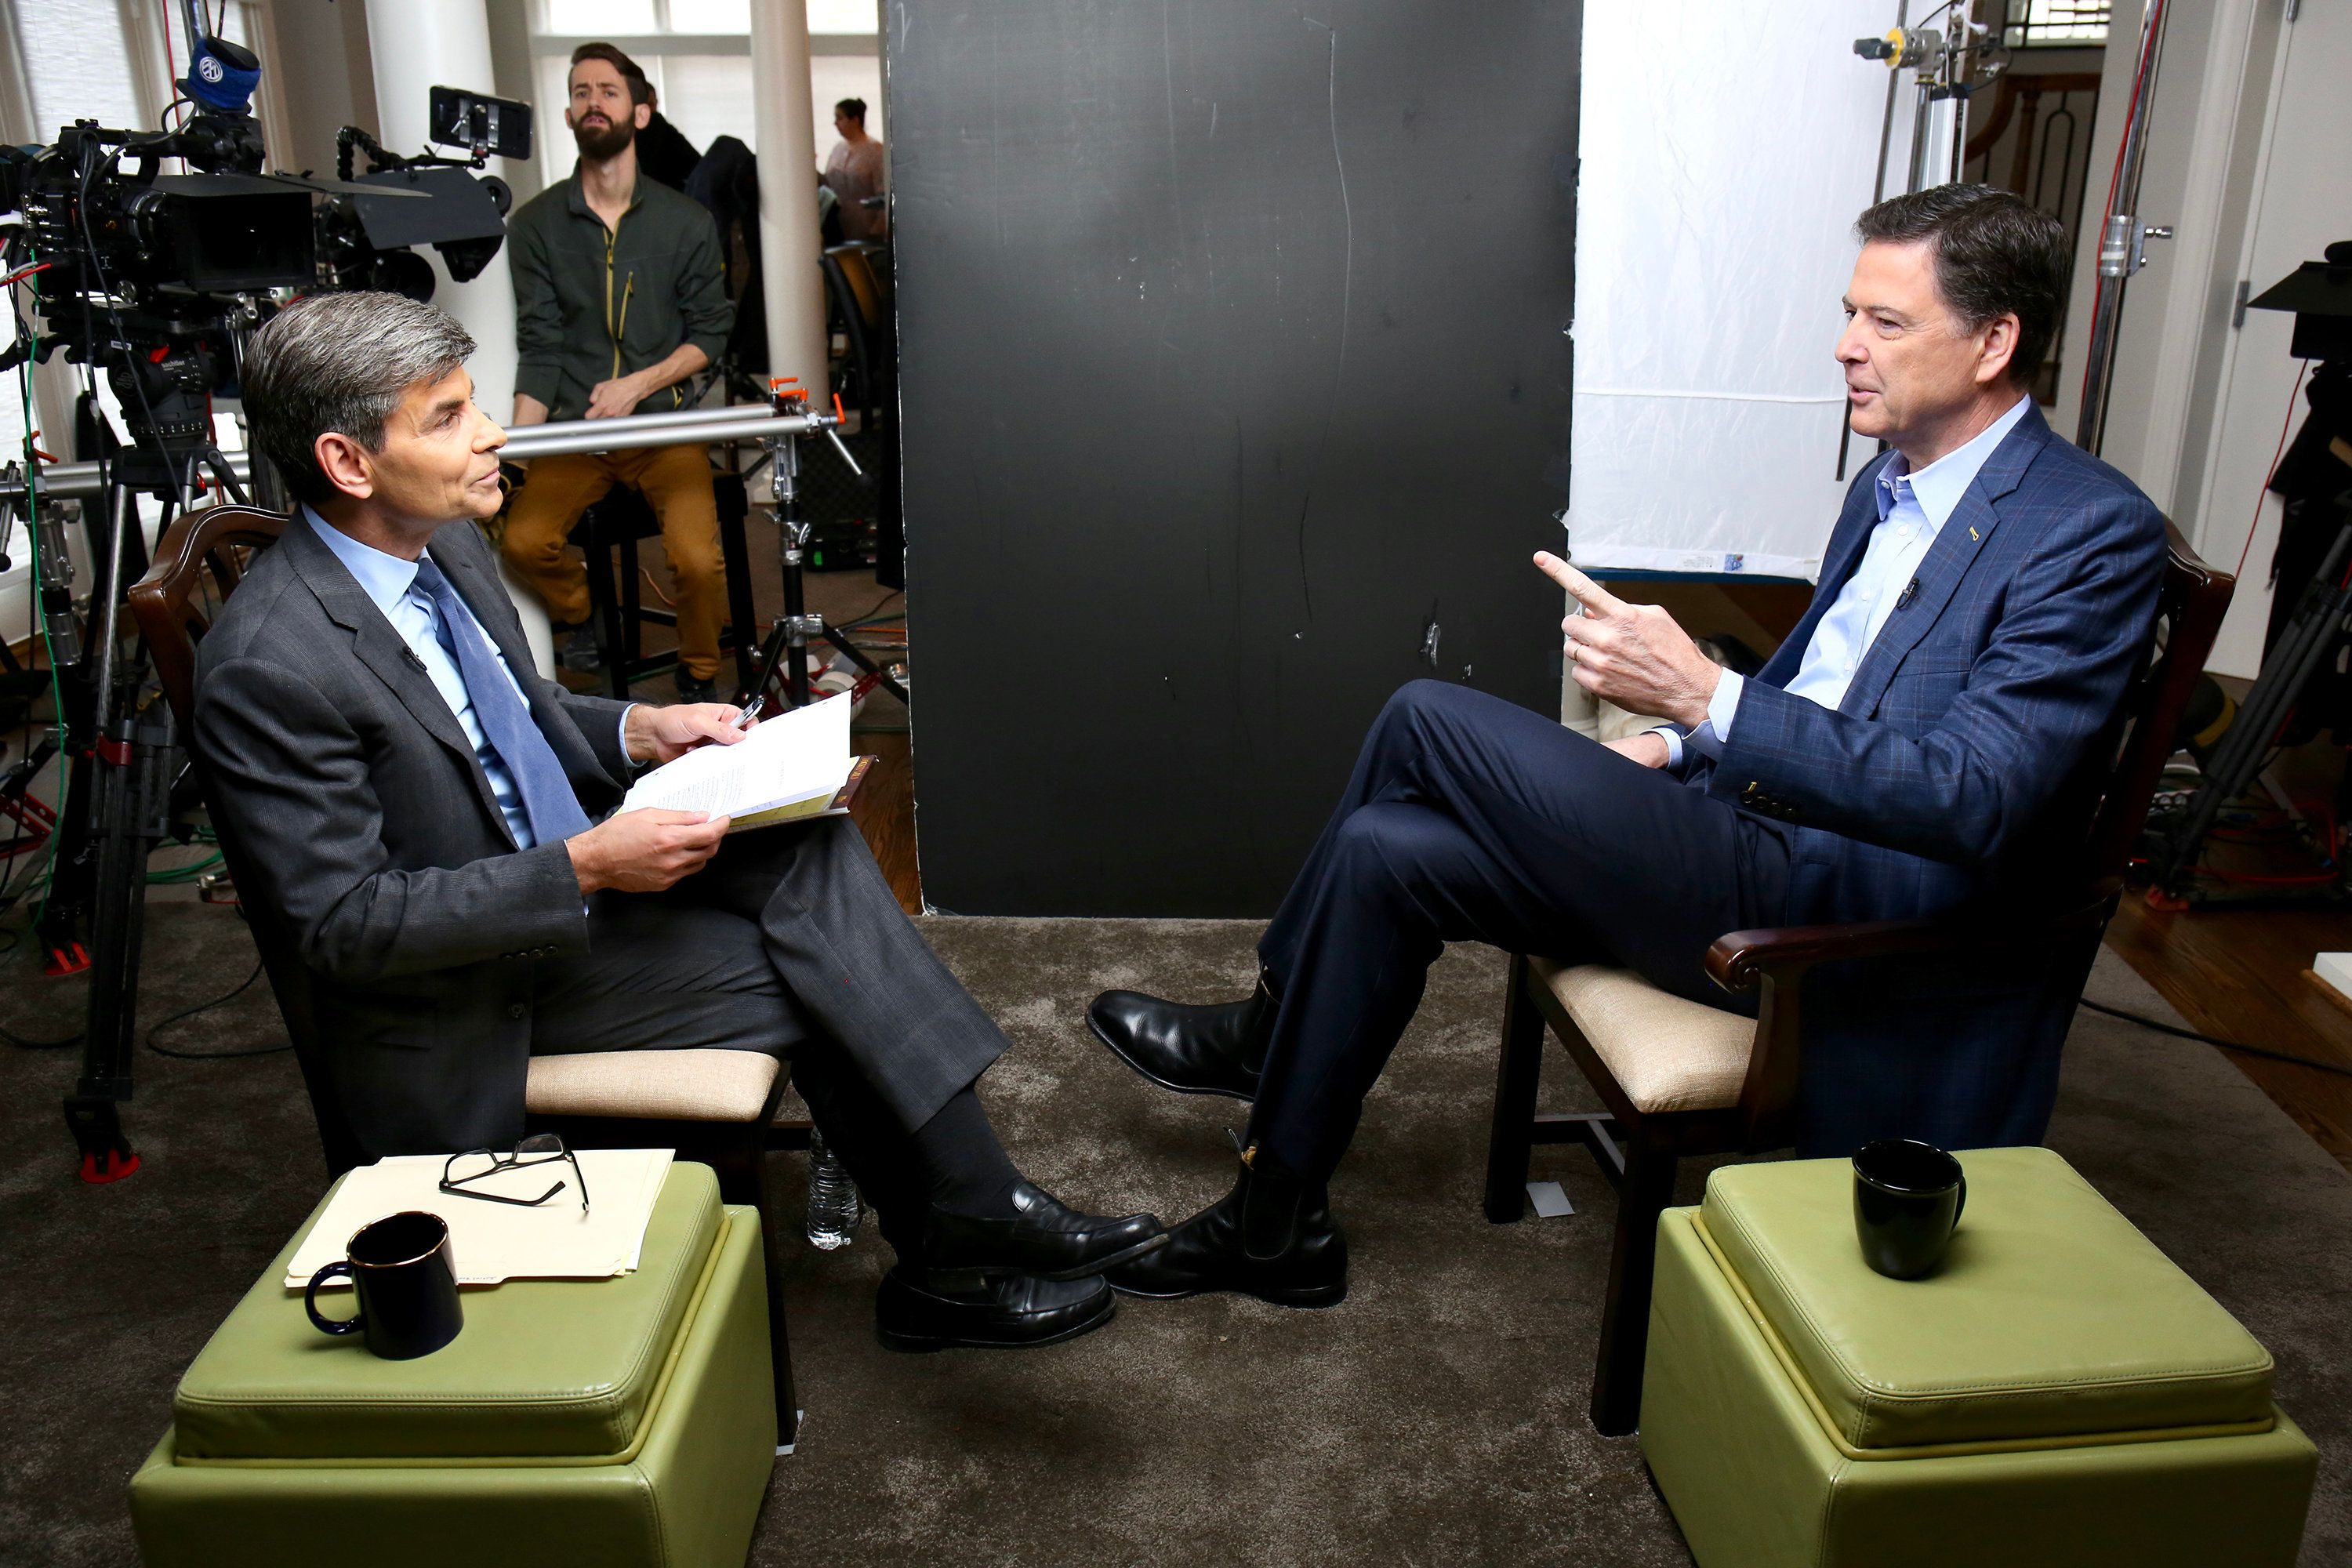 Former FBI Director James Comey gave a searing interview about his encounters with President Donald Trump to ABC News on Sund